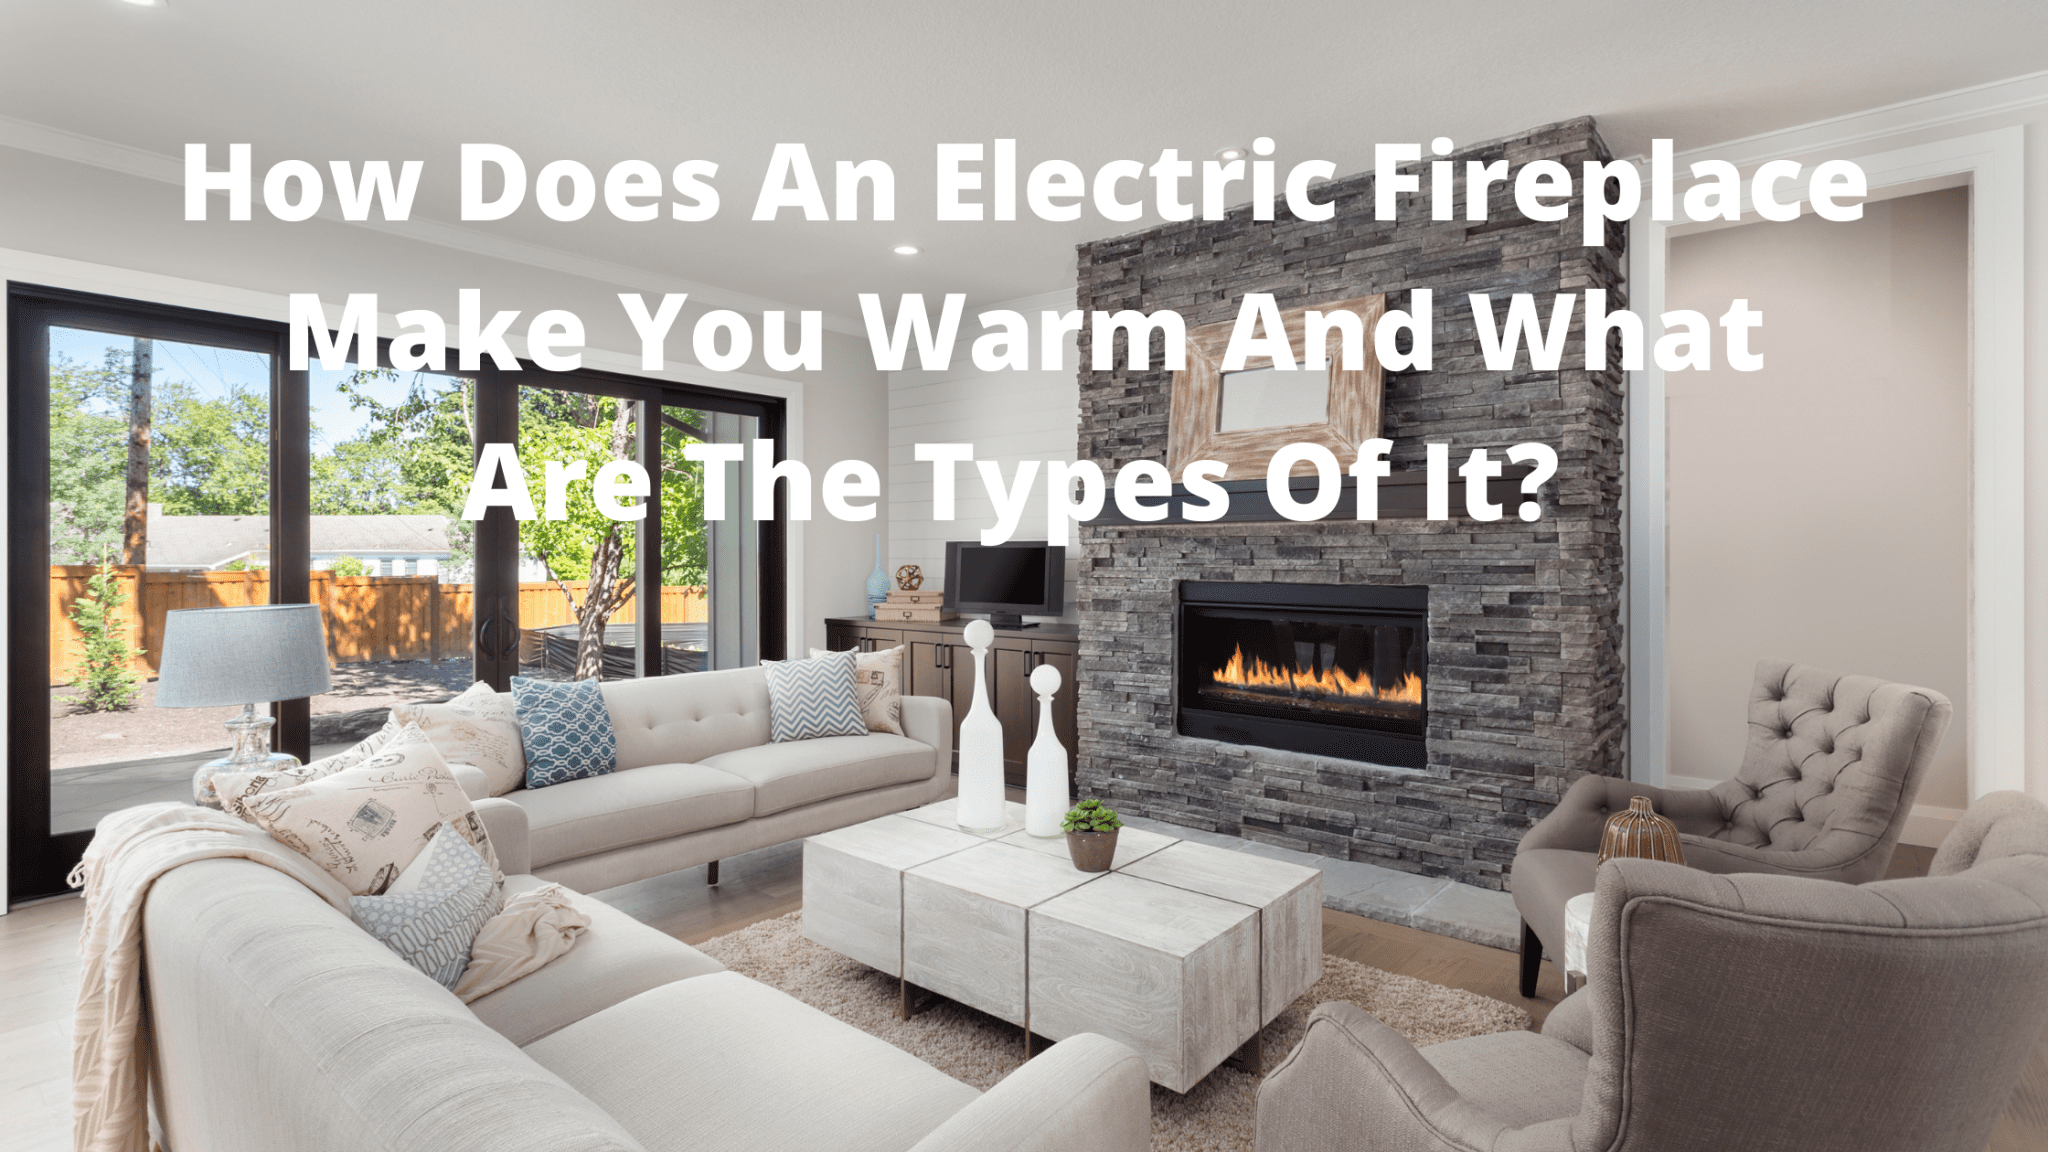 How Does An Electric Fireplace Make You Warm And What Are The Types Of It?